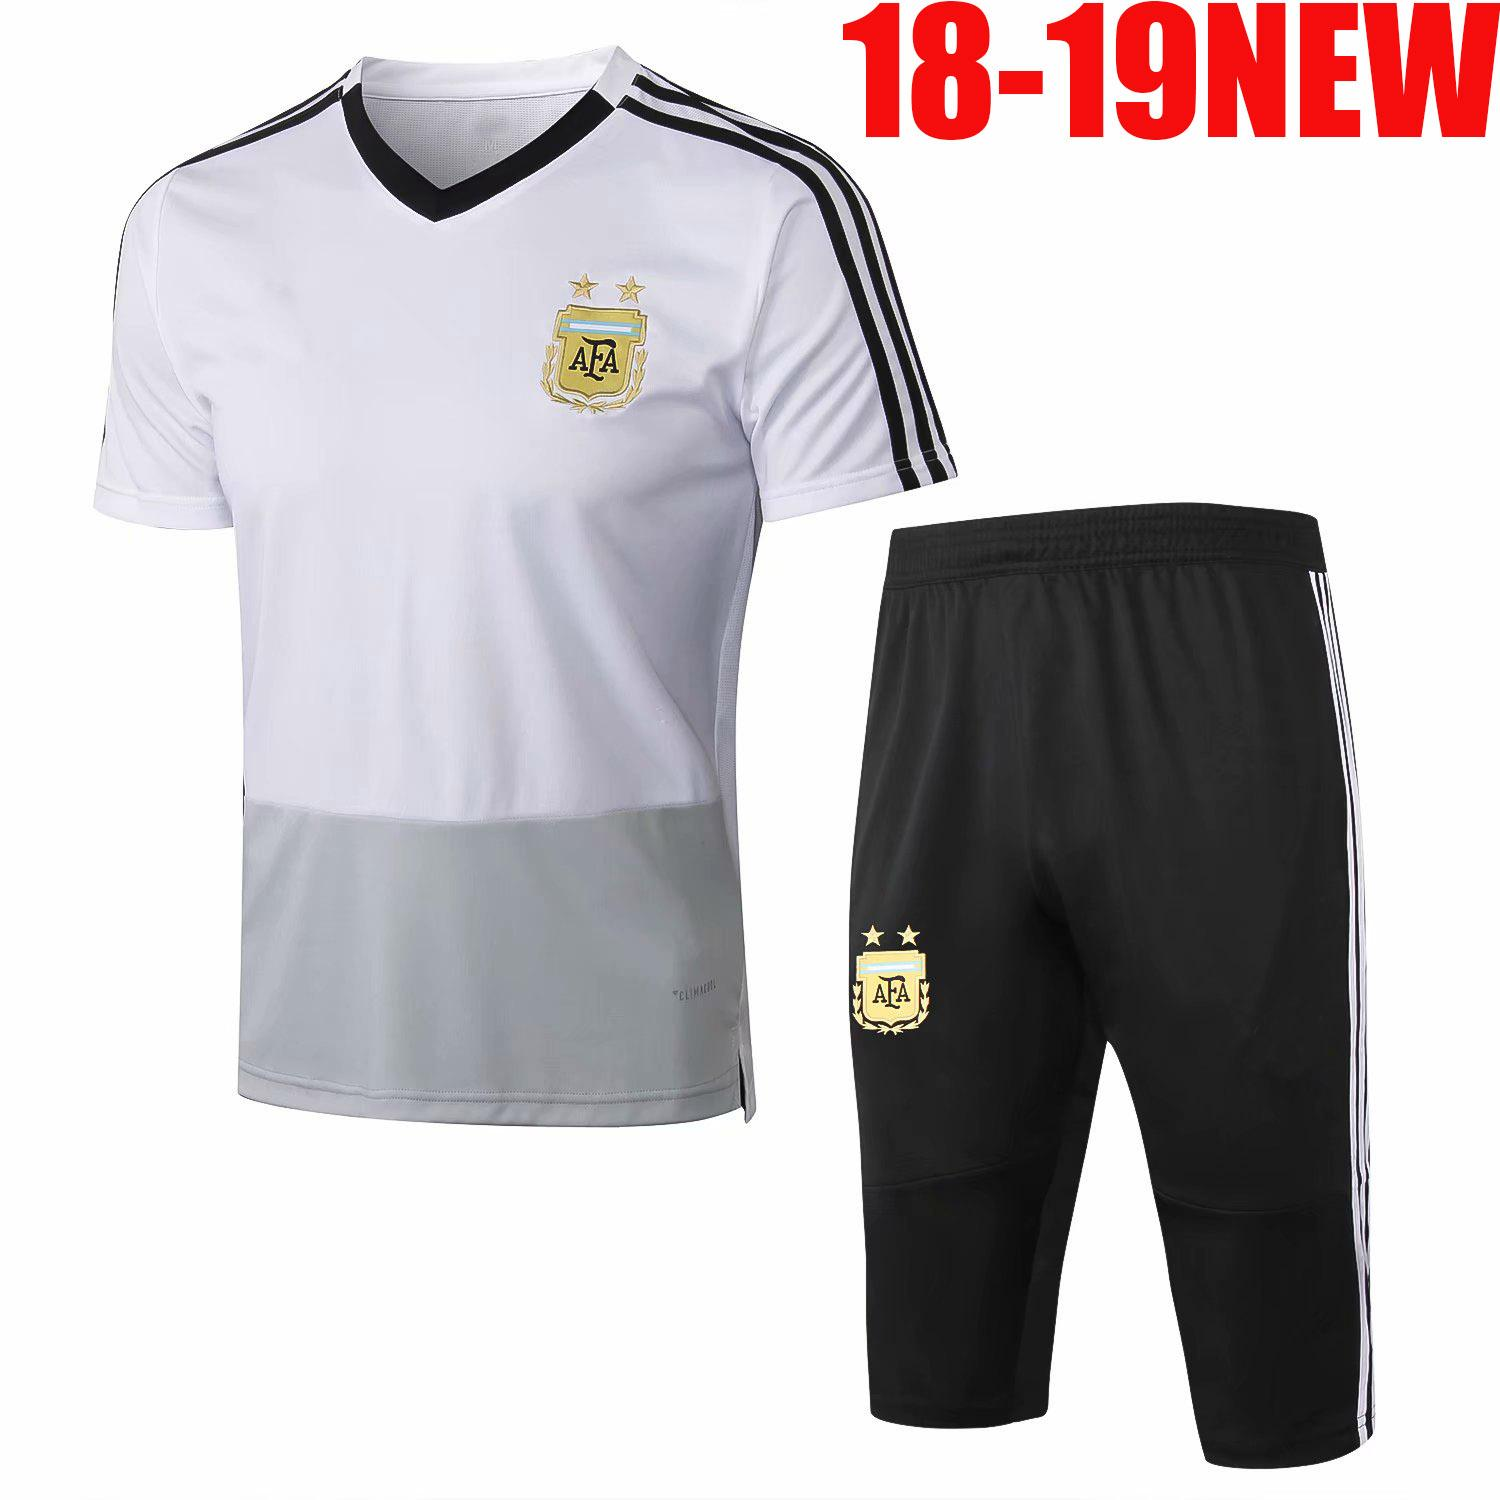 83ead805509 2019 2018 2019 World Cup Soccer Spain Polo Shirt 18 19 Colombia Belgium  Argentina Custom Adult Football Training Suit From Jerseys aaa